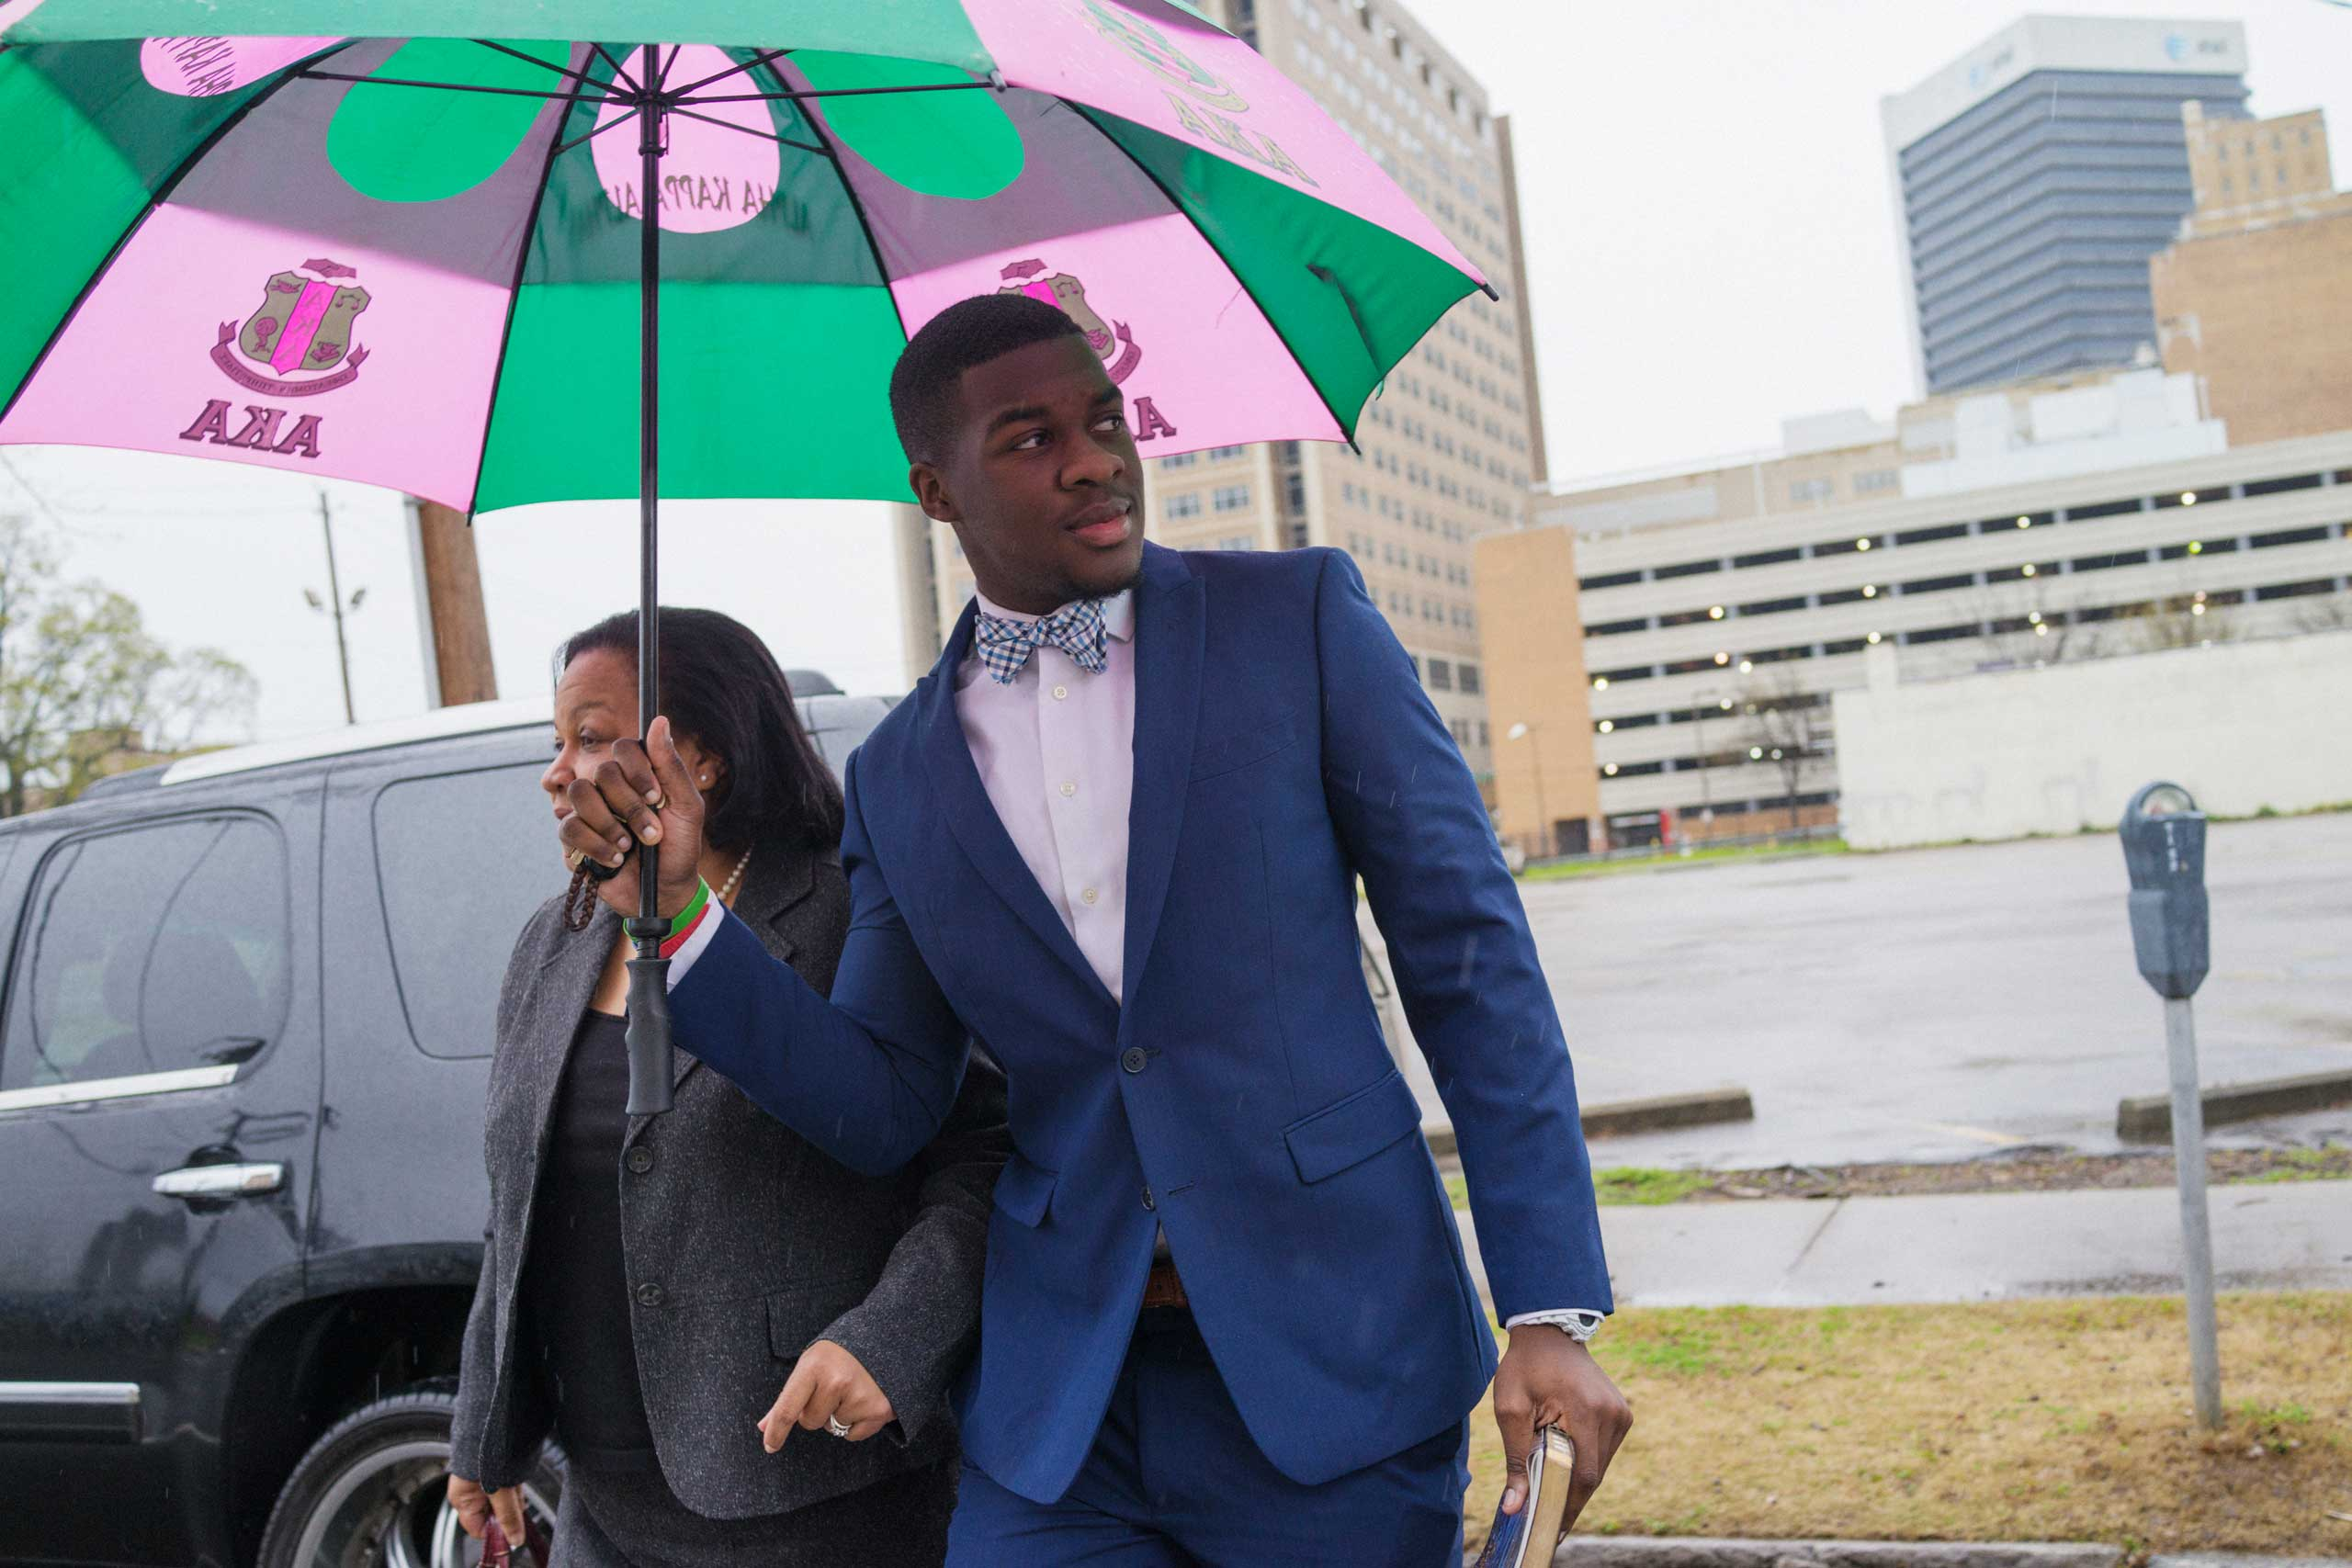 P.J. Garrett holds an umbrella for his mother, Dr. Cynthia Garrett, as they arrive at 16th Street Baptist Church.